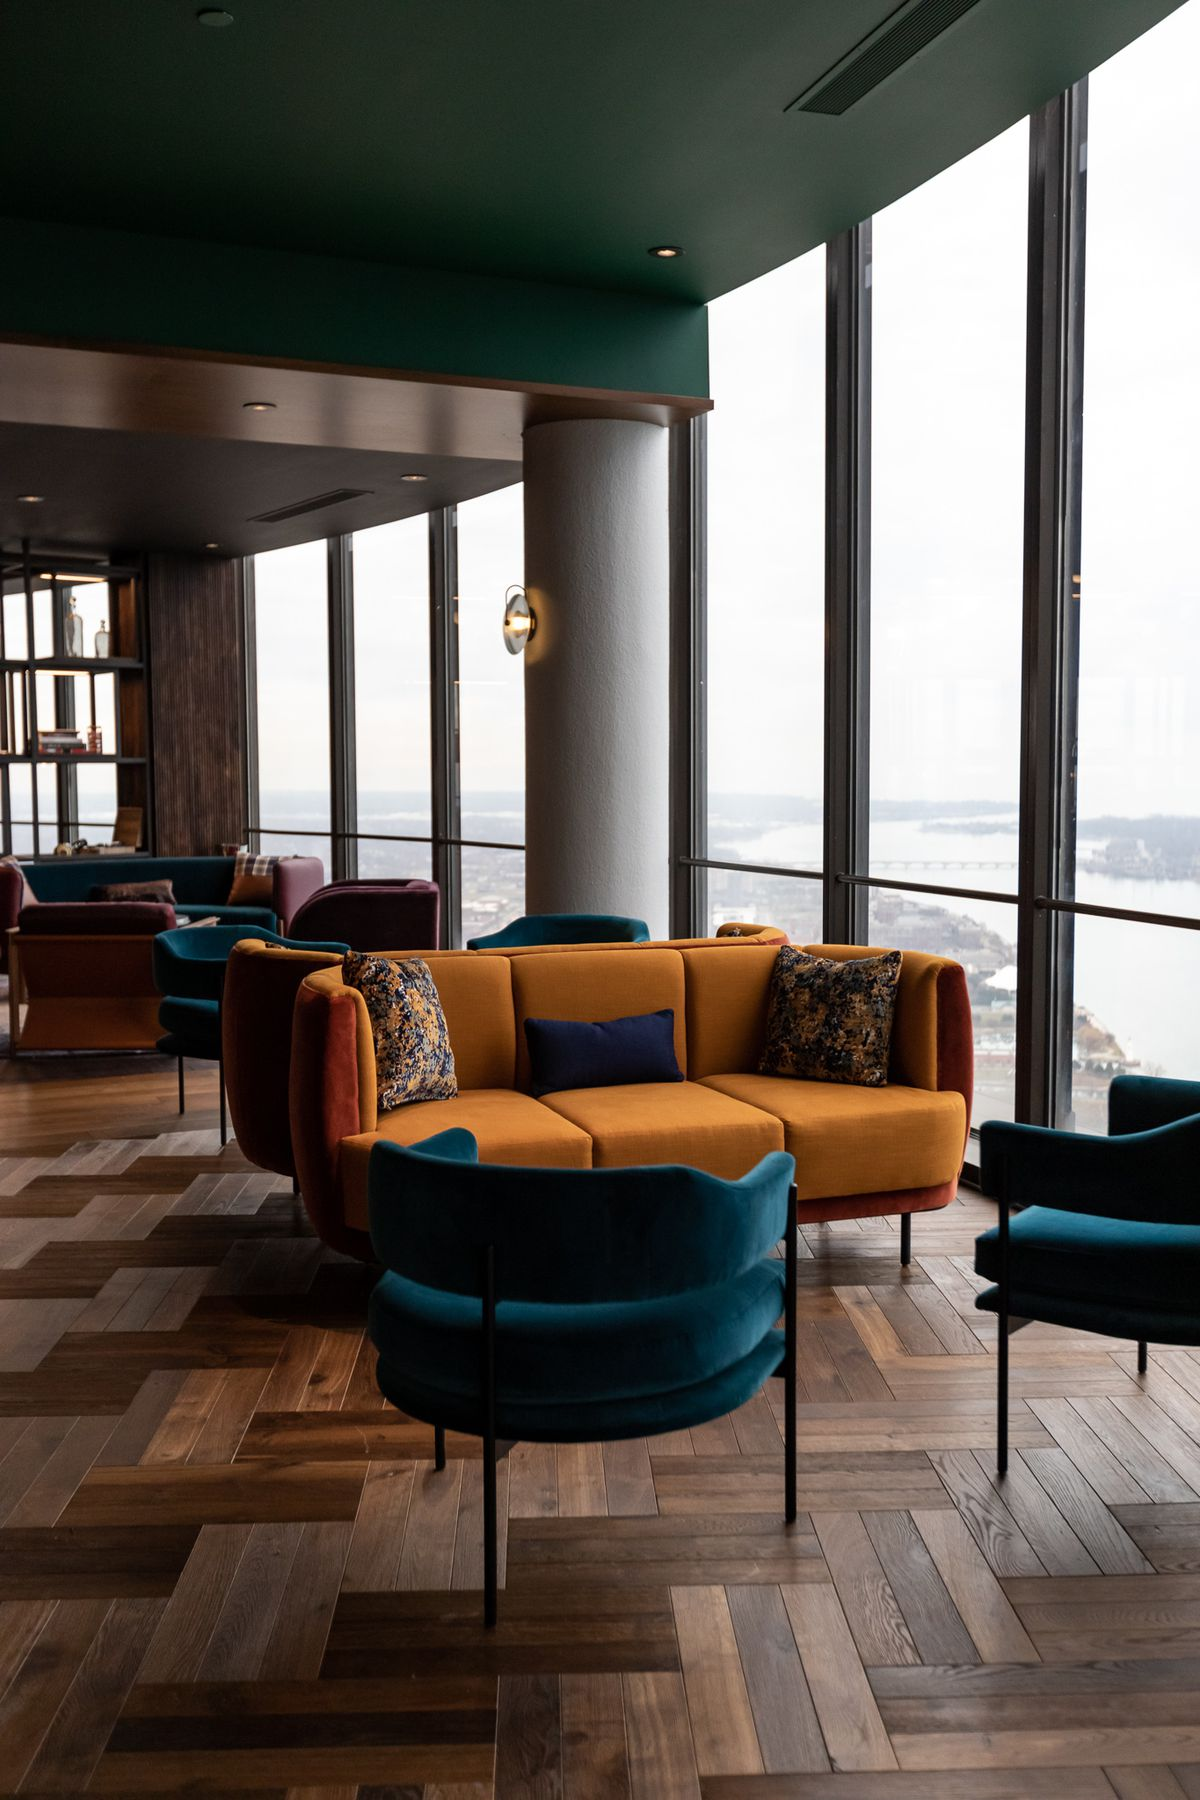 Jewel-toned velvet chairs and sofas on patterned wood floors in the lounge next to windows looking out towards St. Clair Shores.